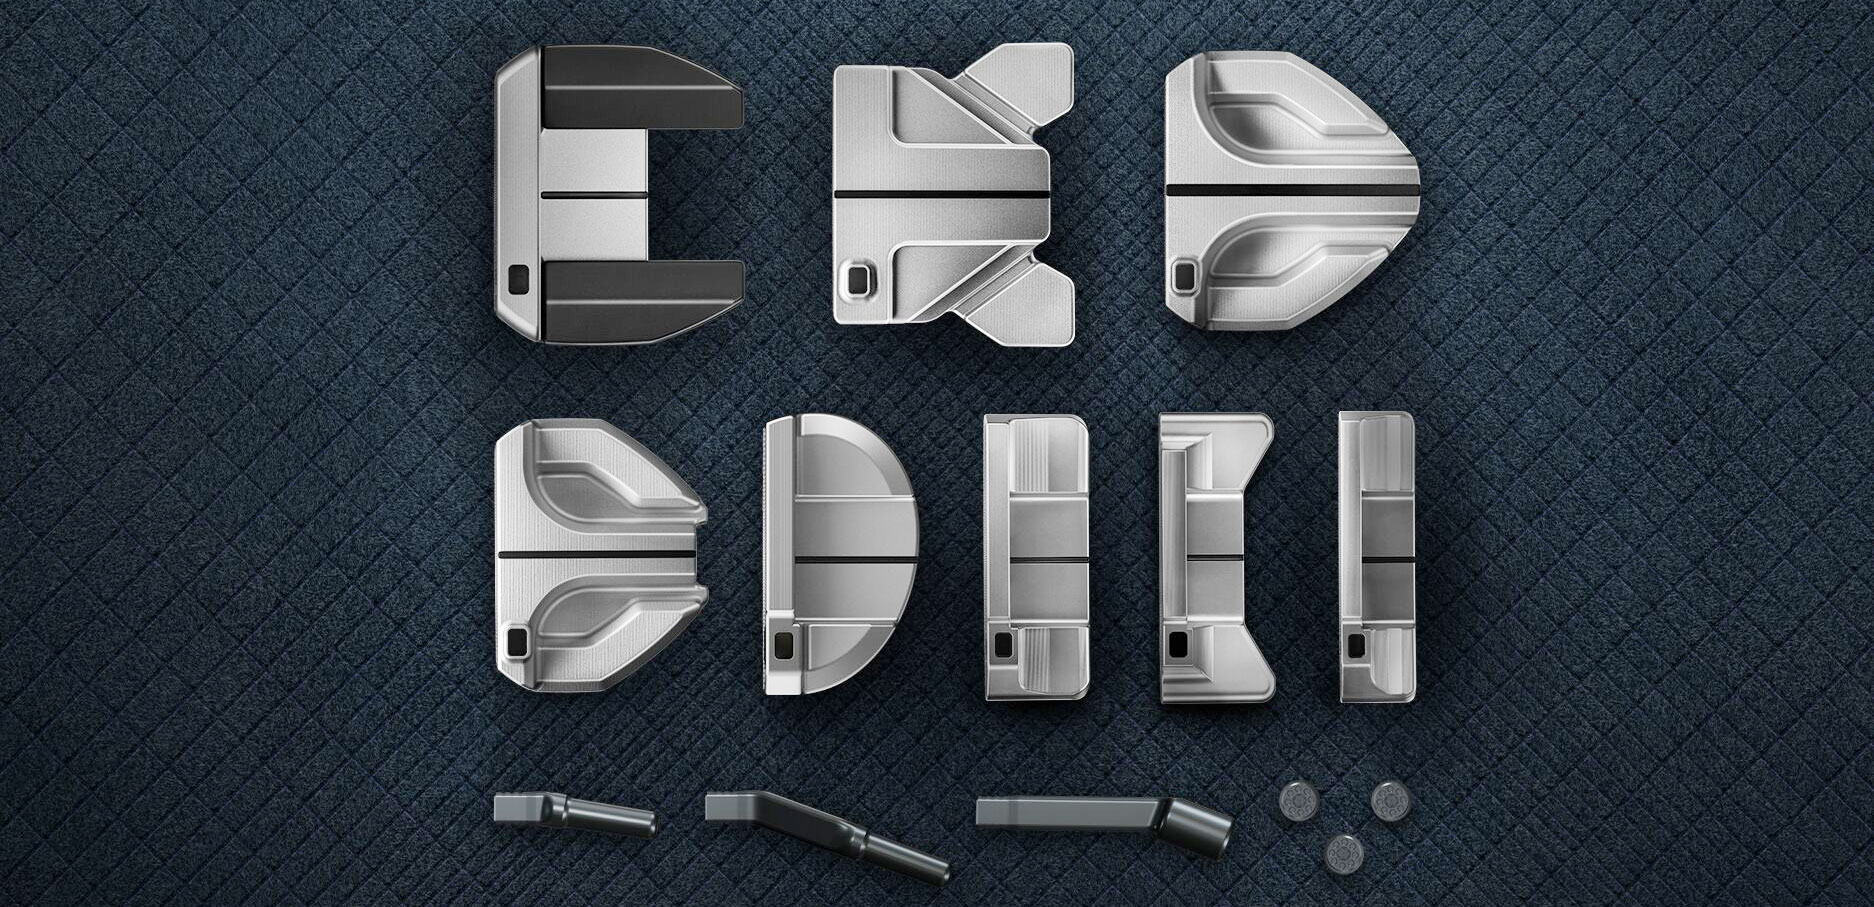 PXG heads and hosels